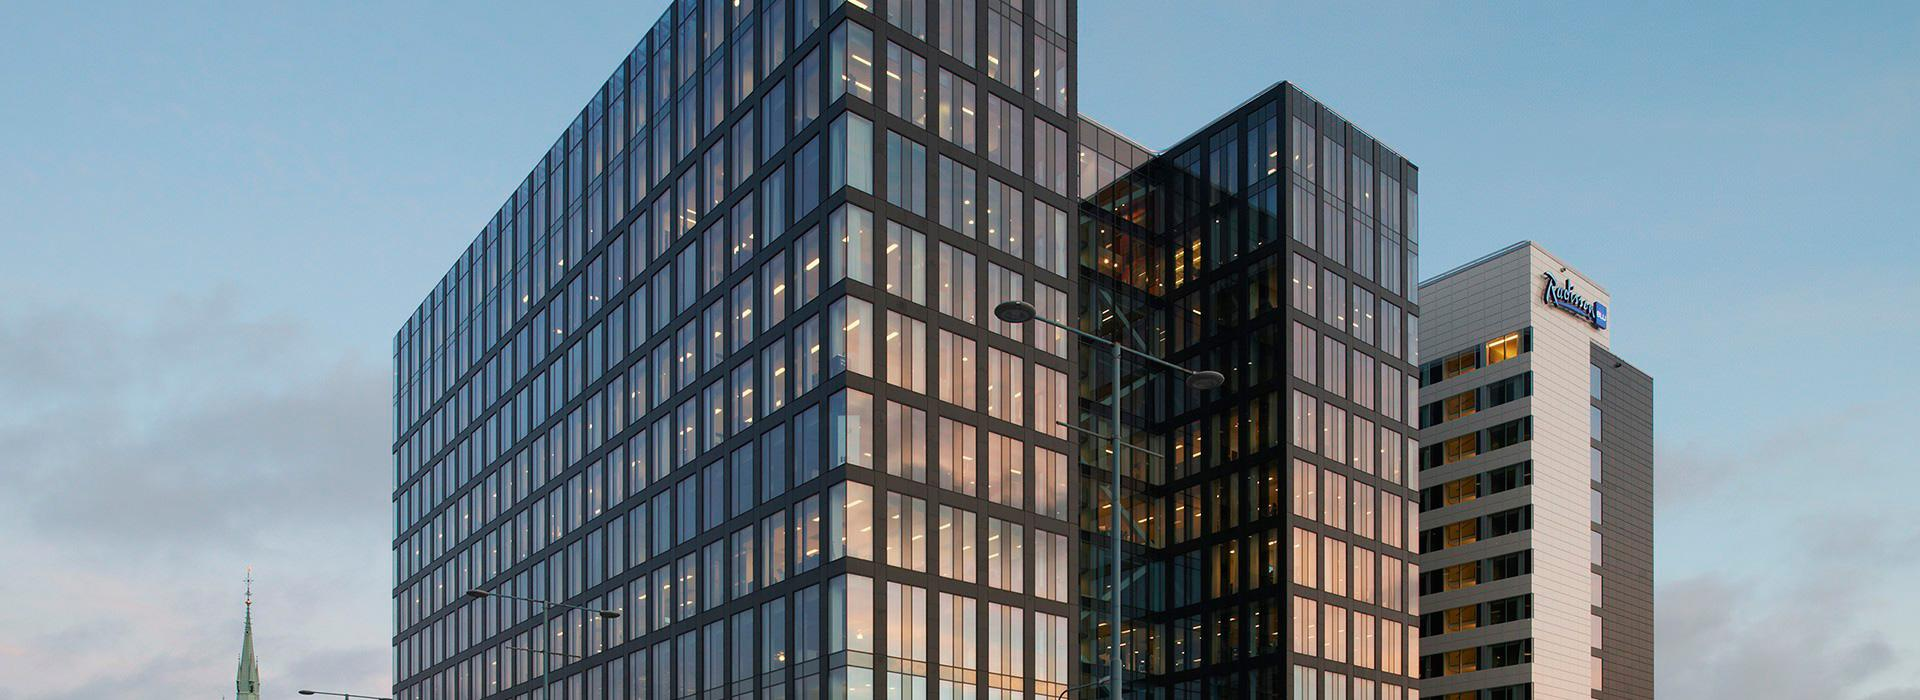 Ventilated walls, covering outdoor facades - FMG